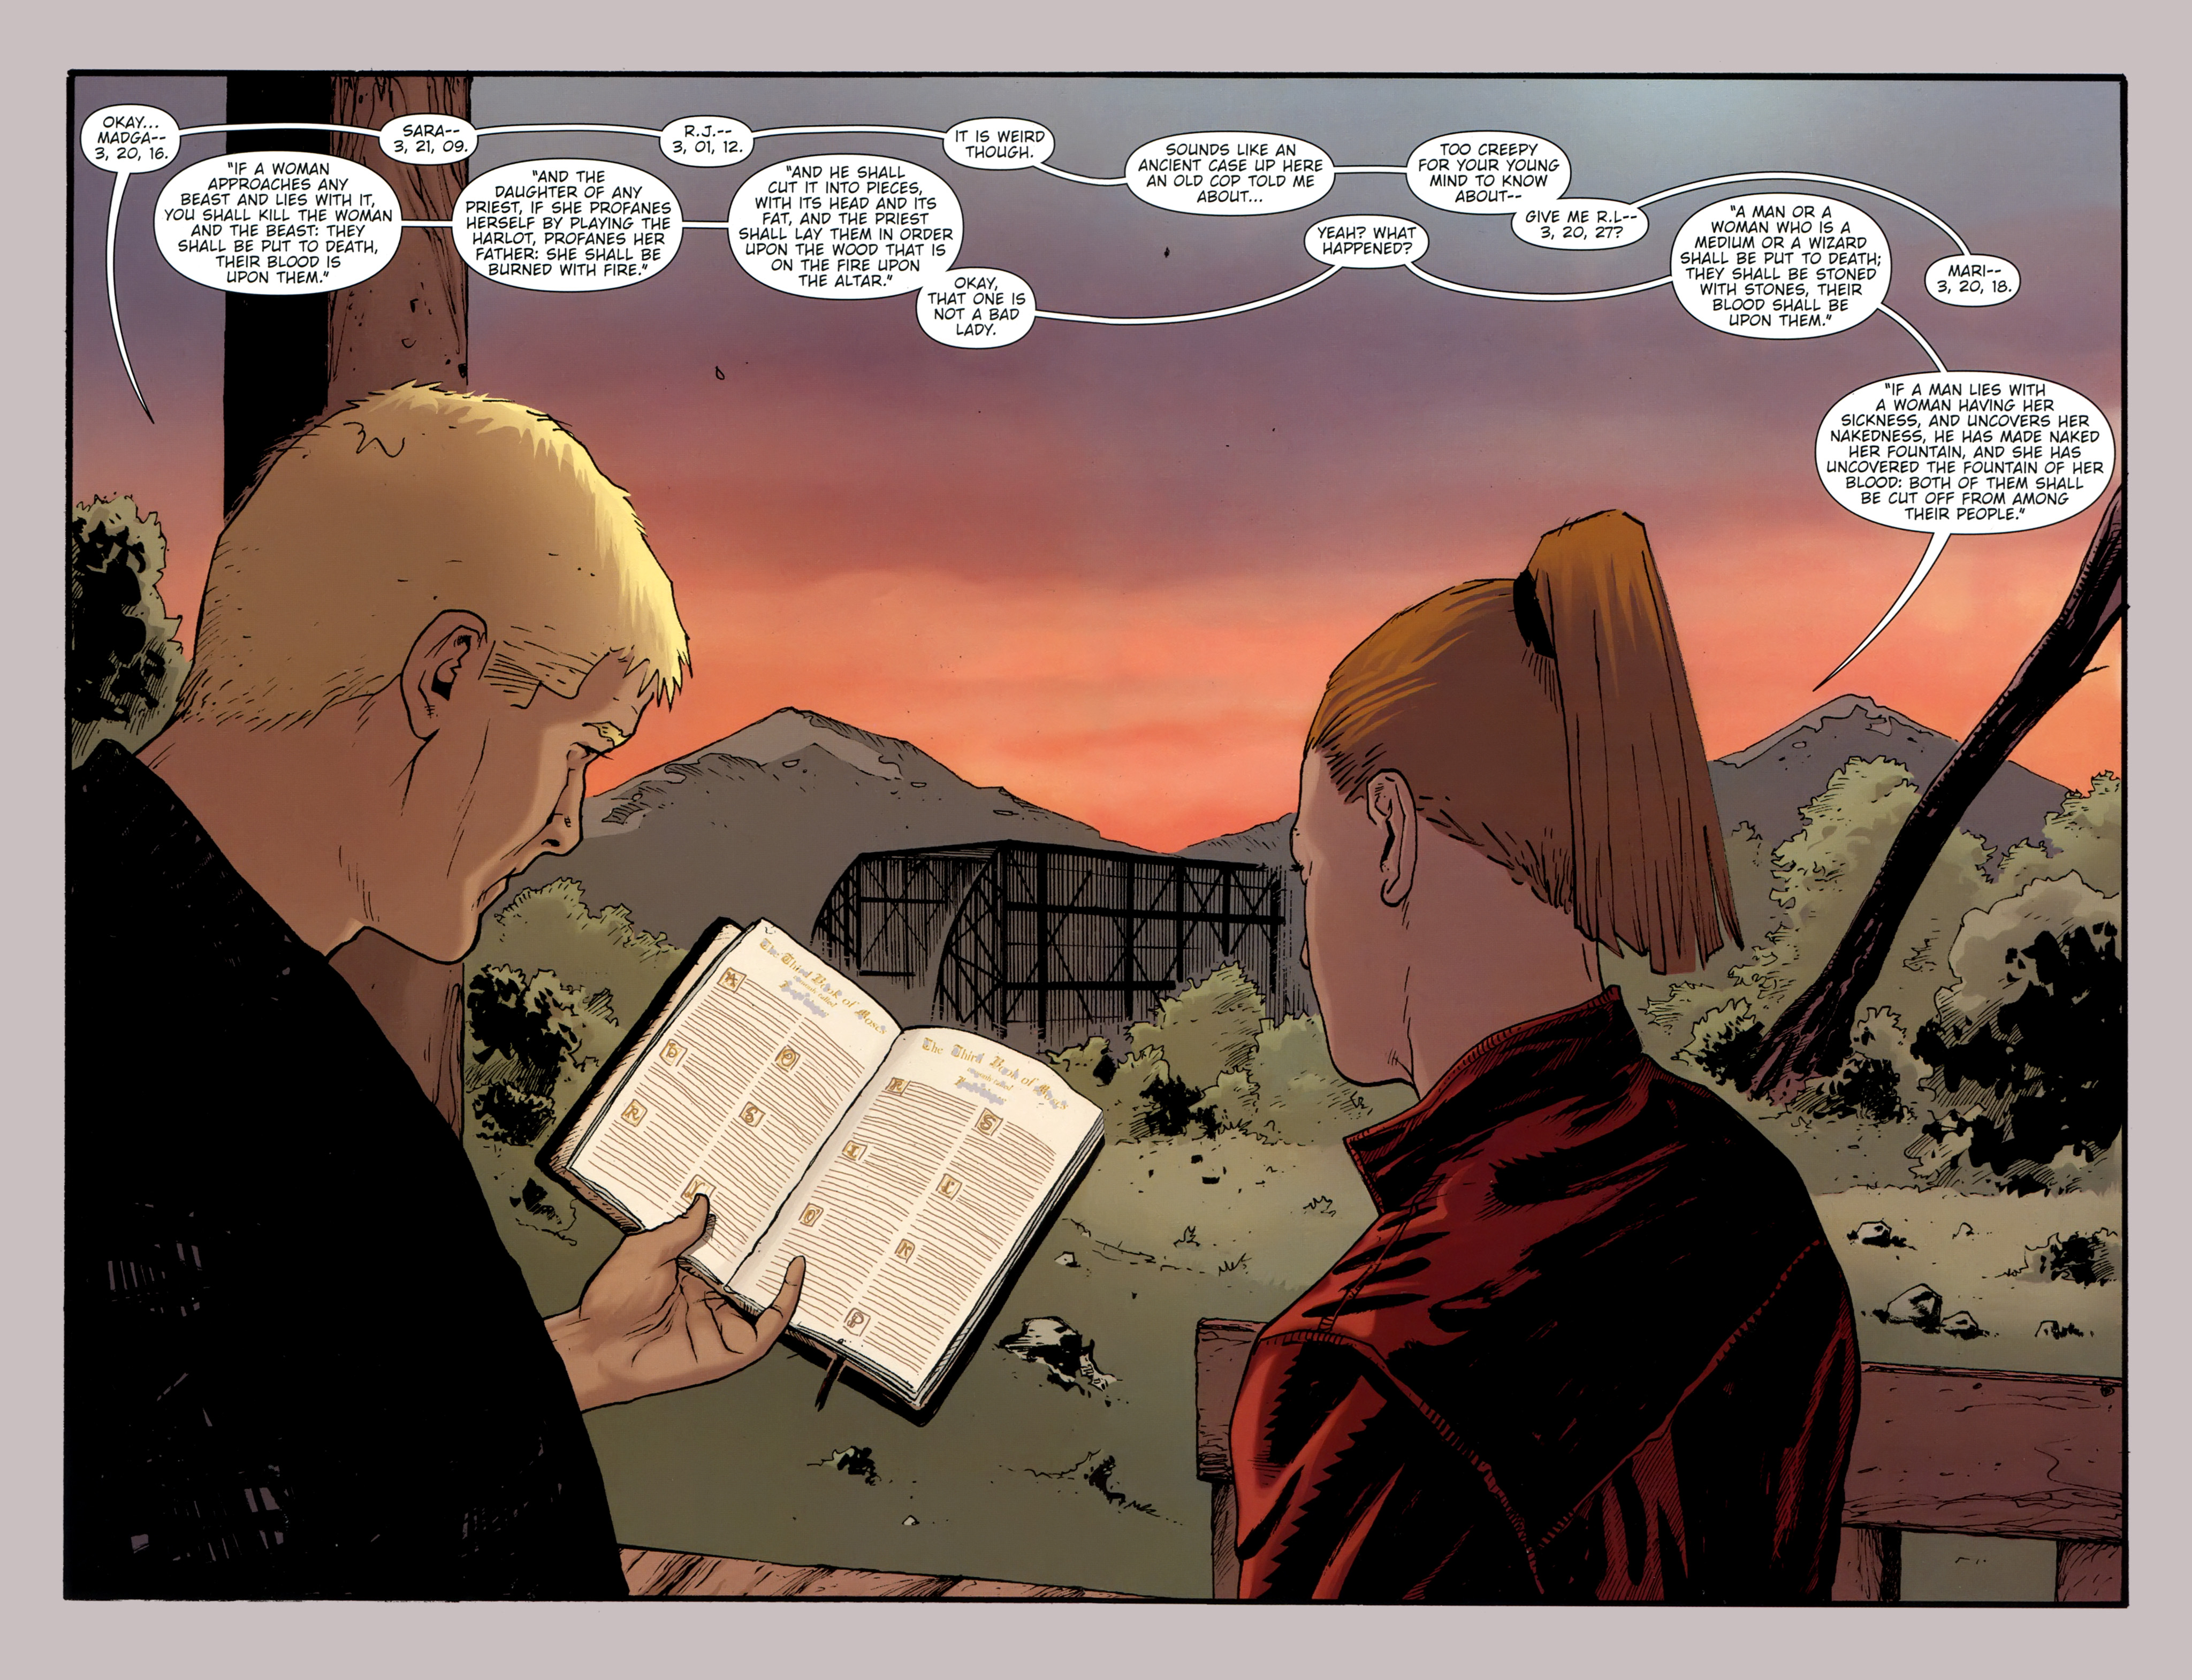 Read online The Girl With the Dragon Tattoo comic -  Issue # TPB 2 - 33